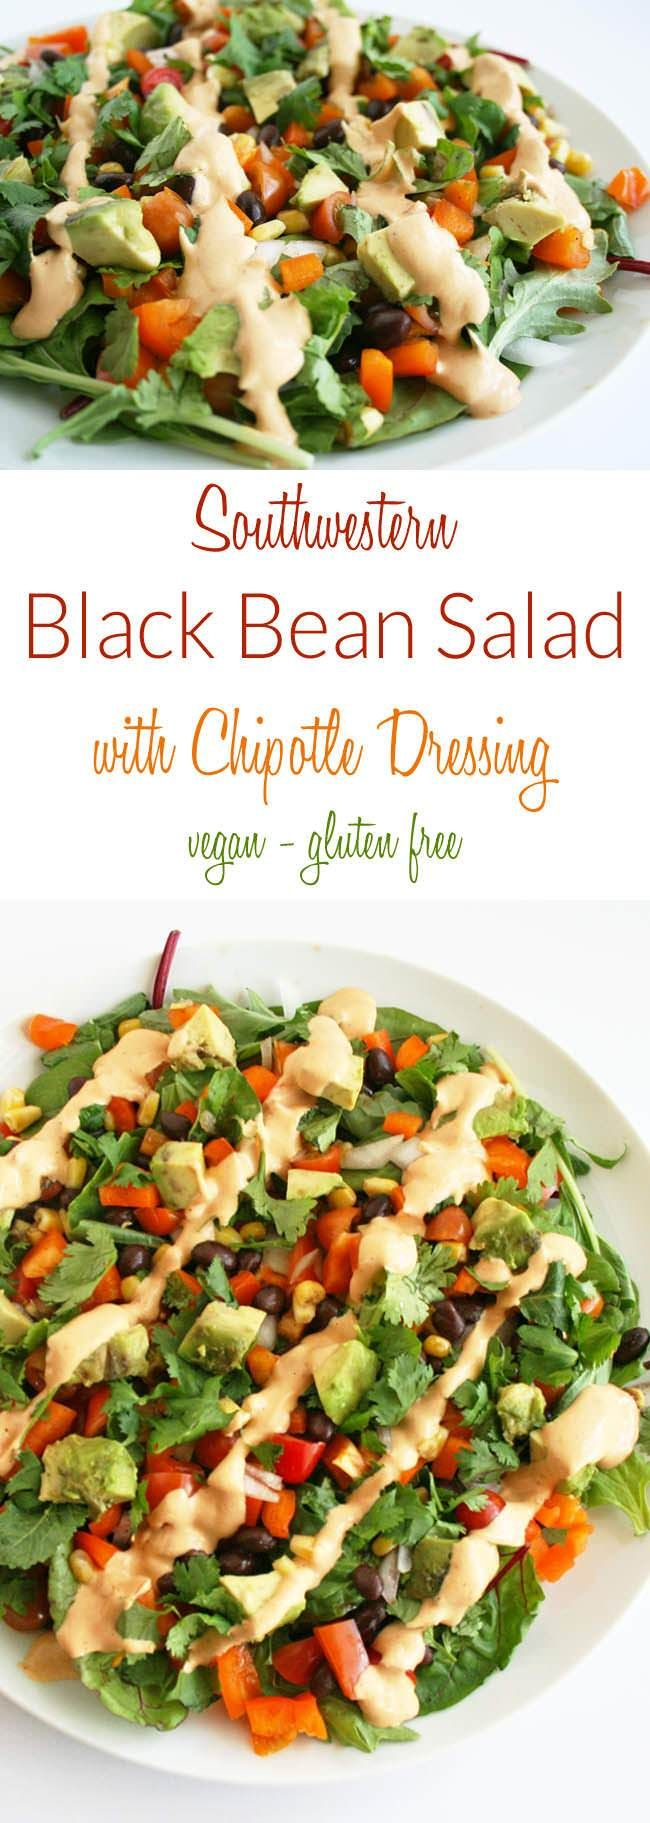 Southwestern Black Bean Salad with Chipotle Dressing (vegan, gluten free) - This vegan salad is an easy lunch or weeknight meal.